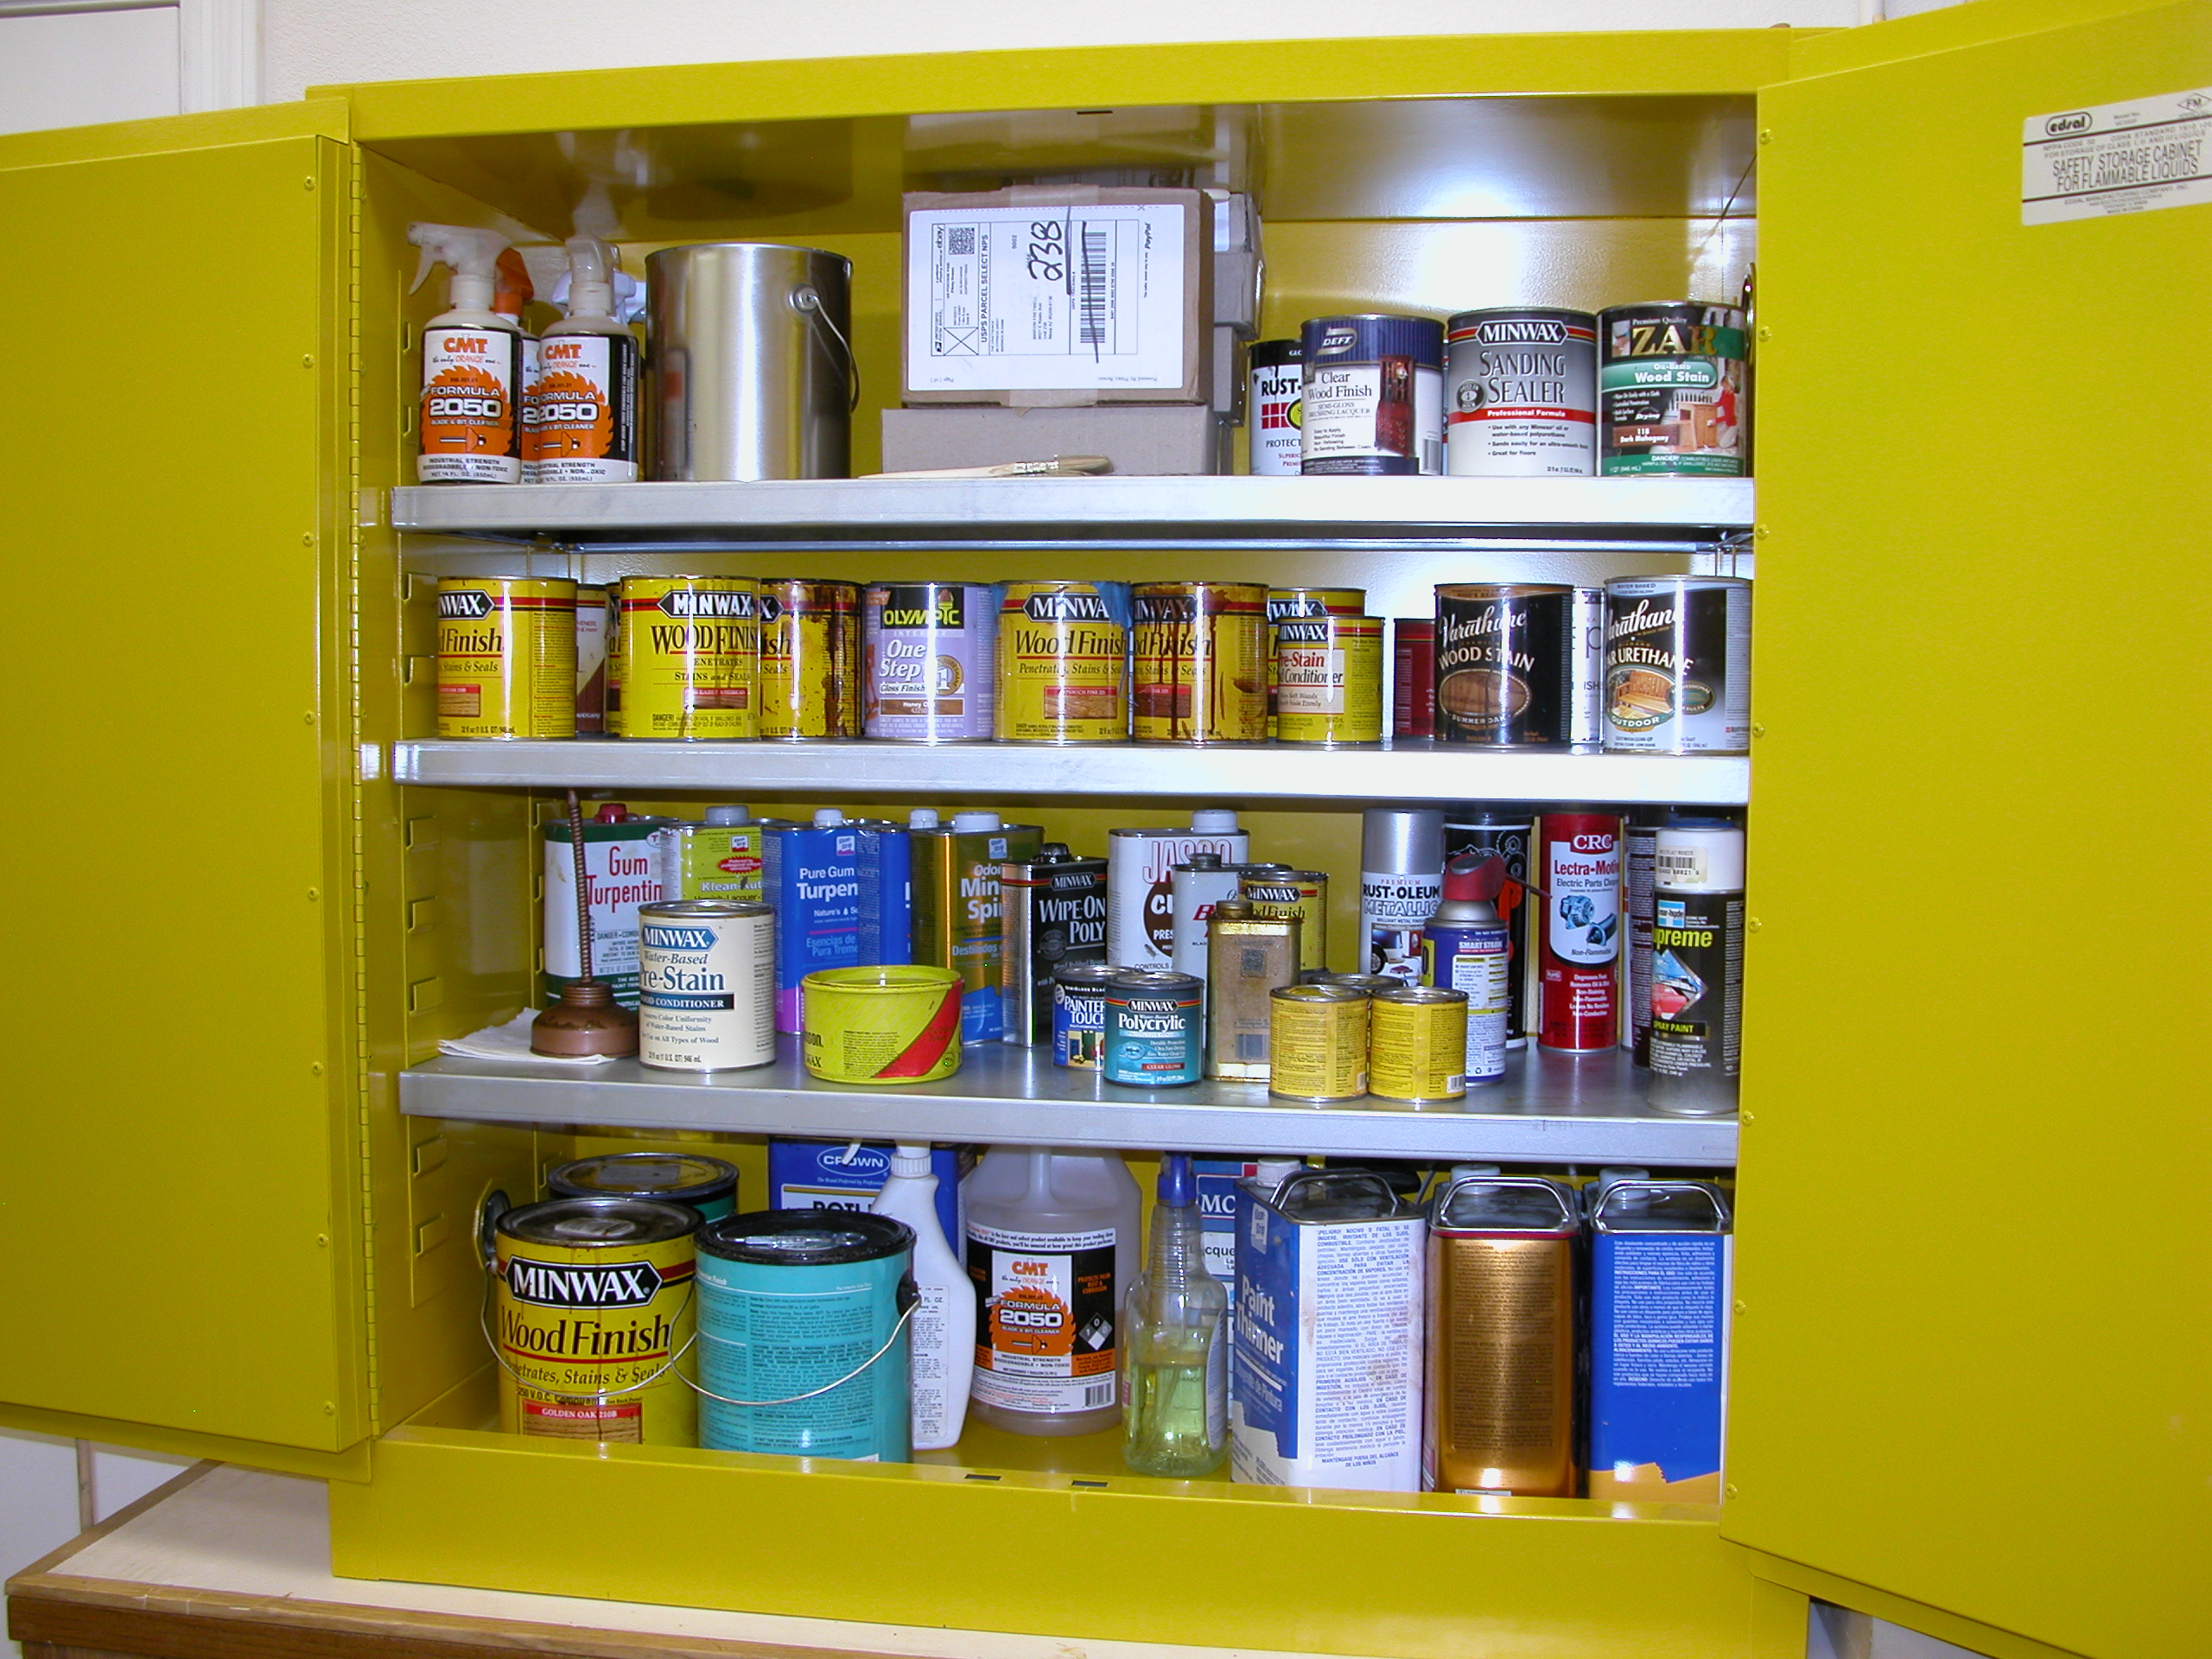 Paints and Solvents in Fireproof Cabinet